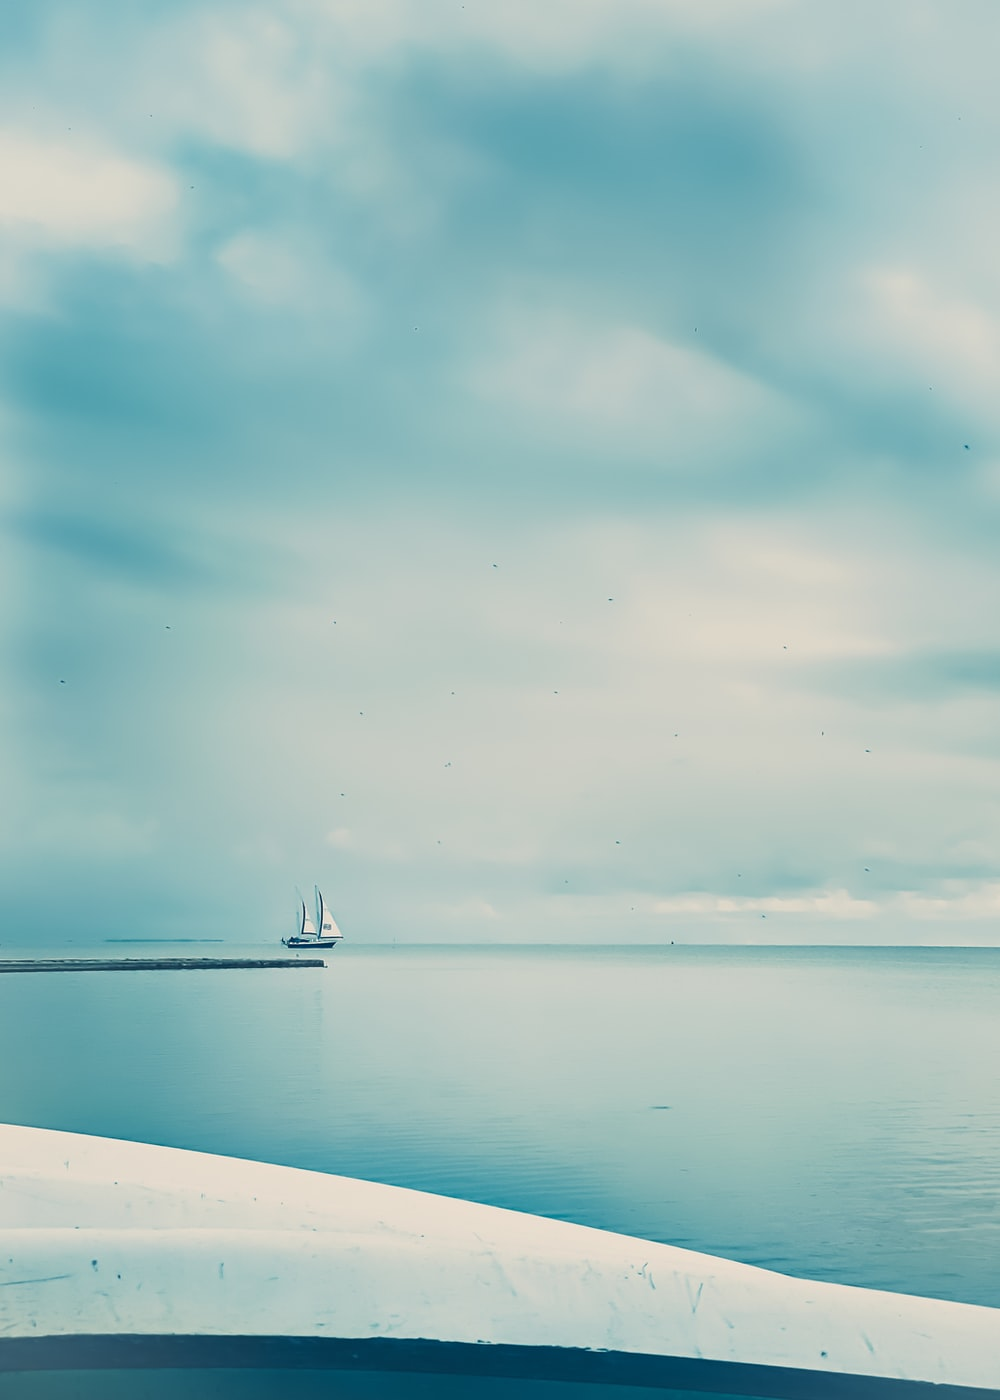 white boat on sea under blue sky during daytime